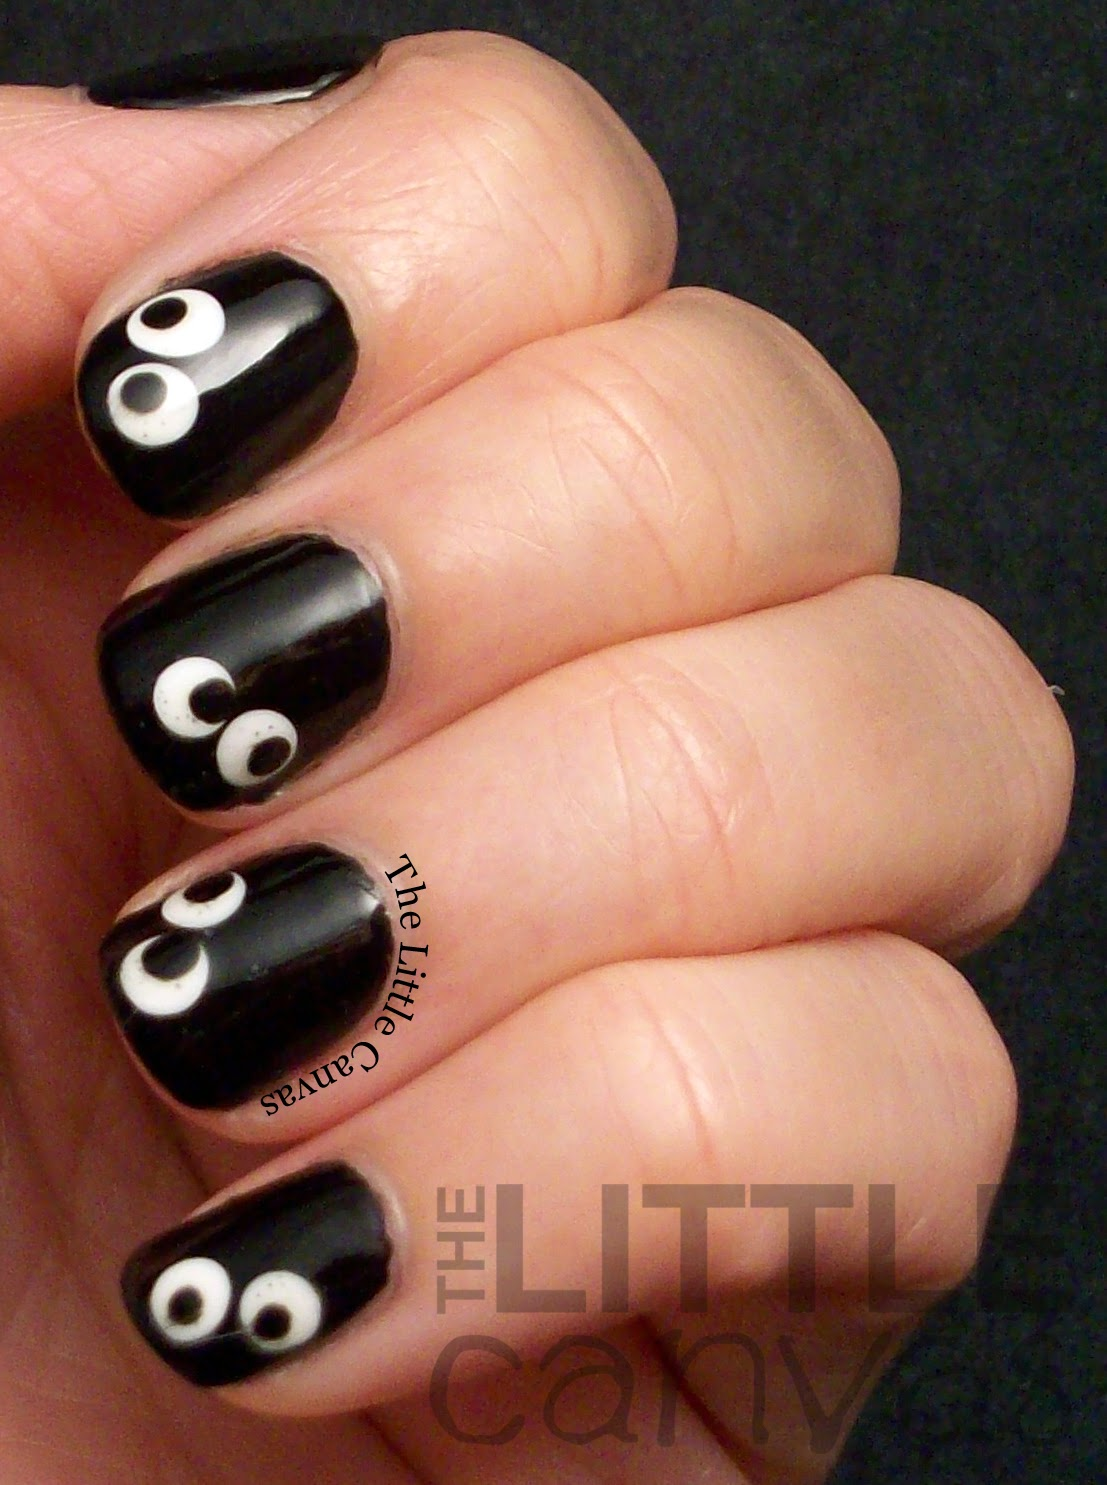 Halloween Googly Eye Nail Art - Halloween Googly Eye Nail Art - The Little Canvas